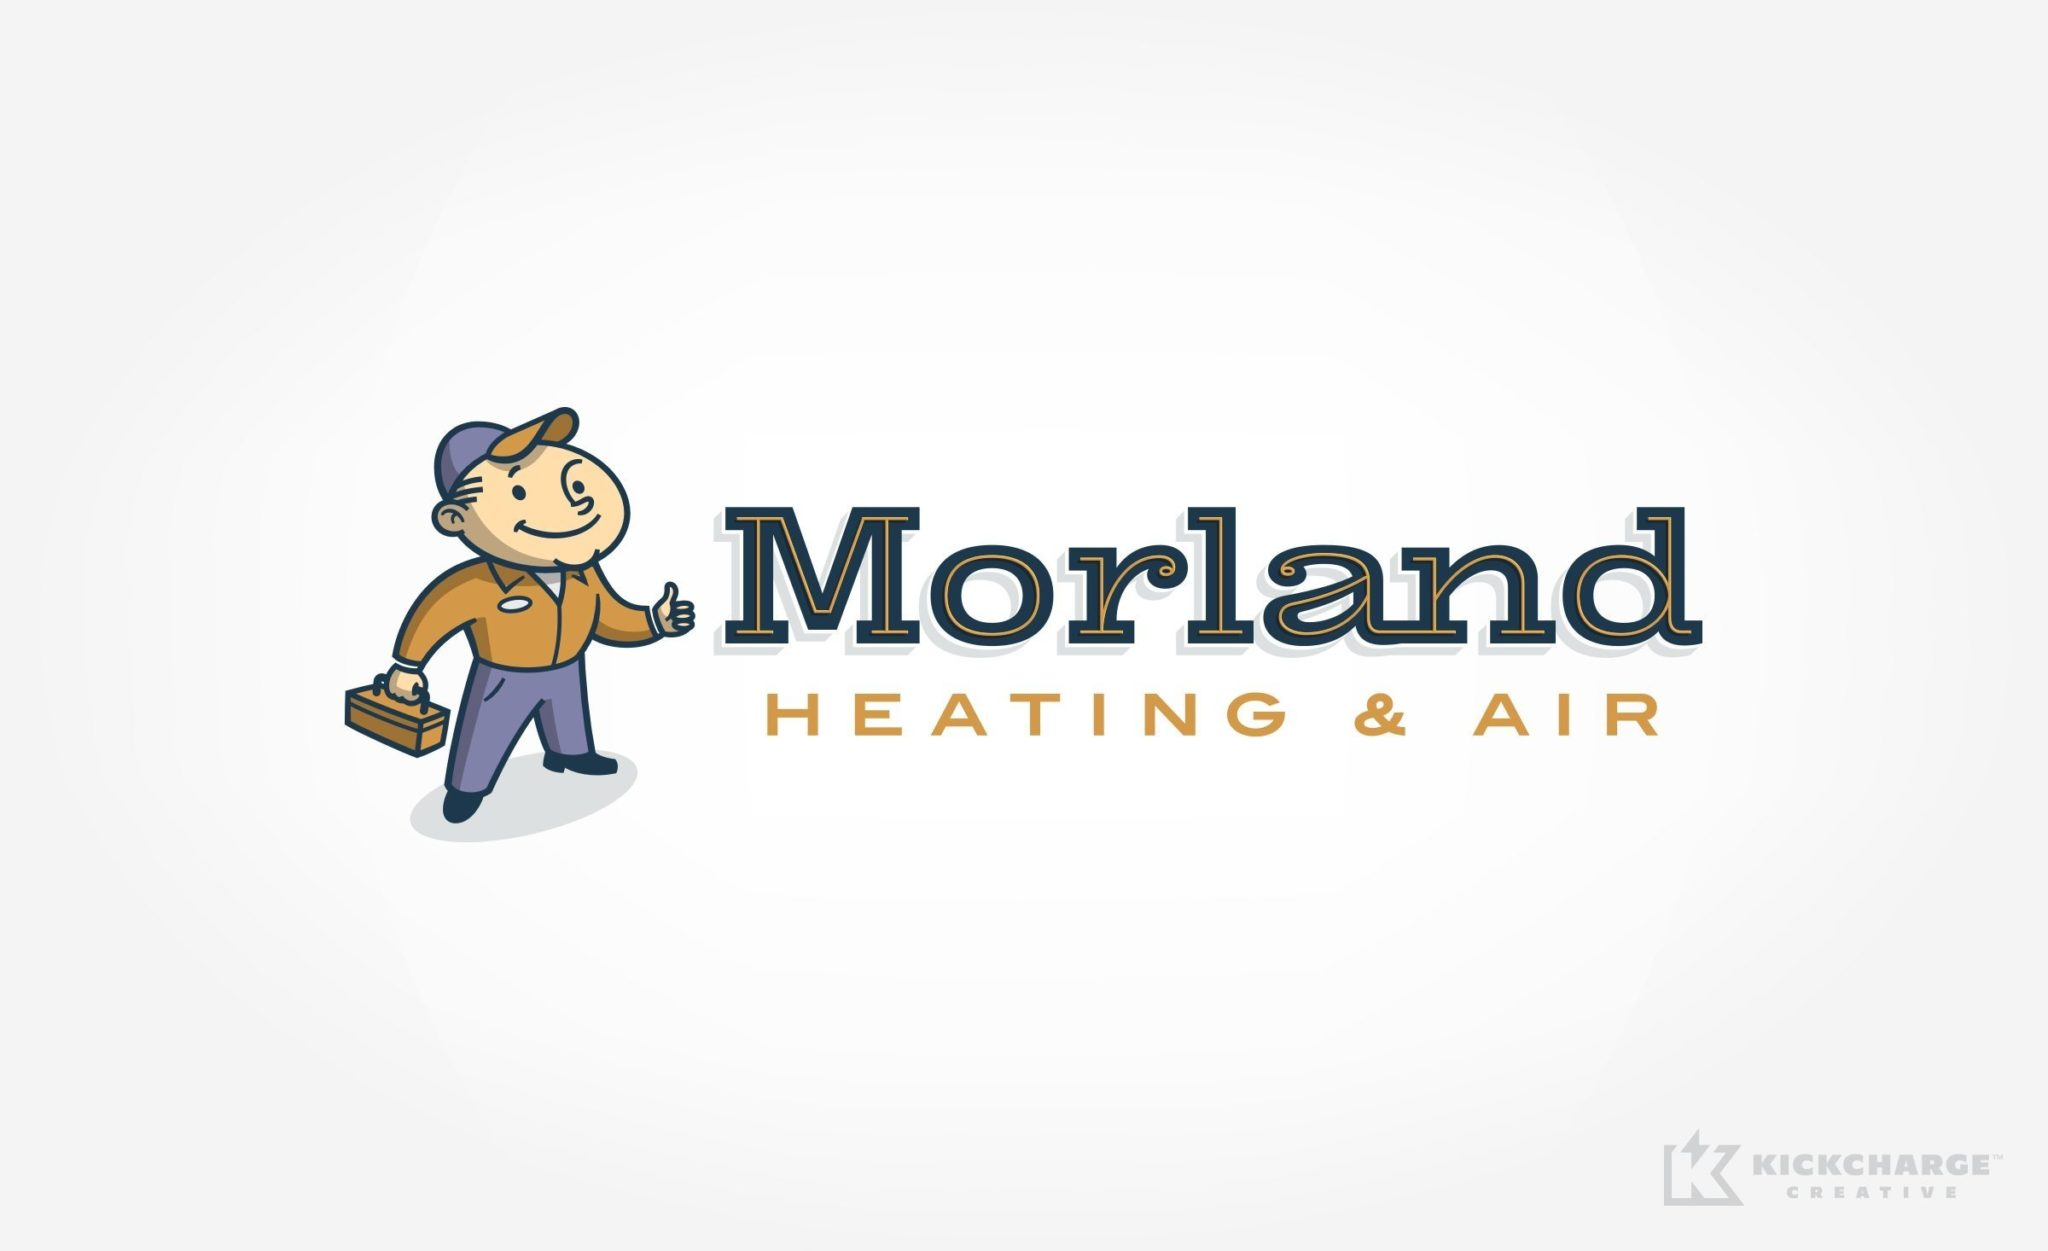 Morland Heating & Air